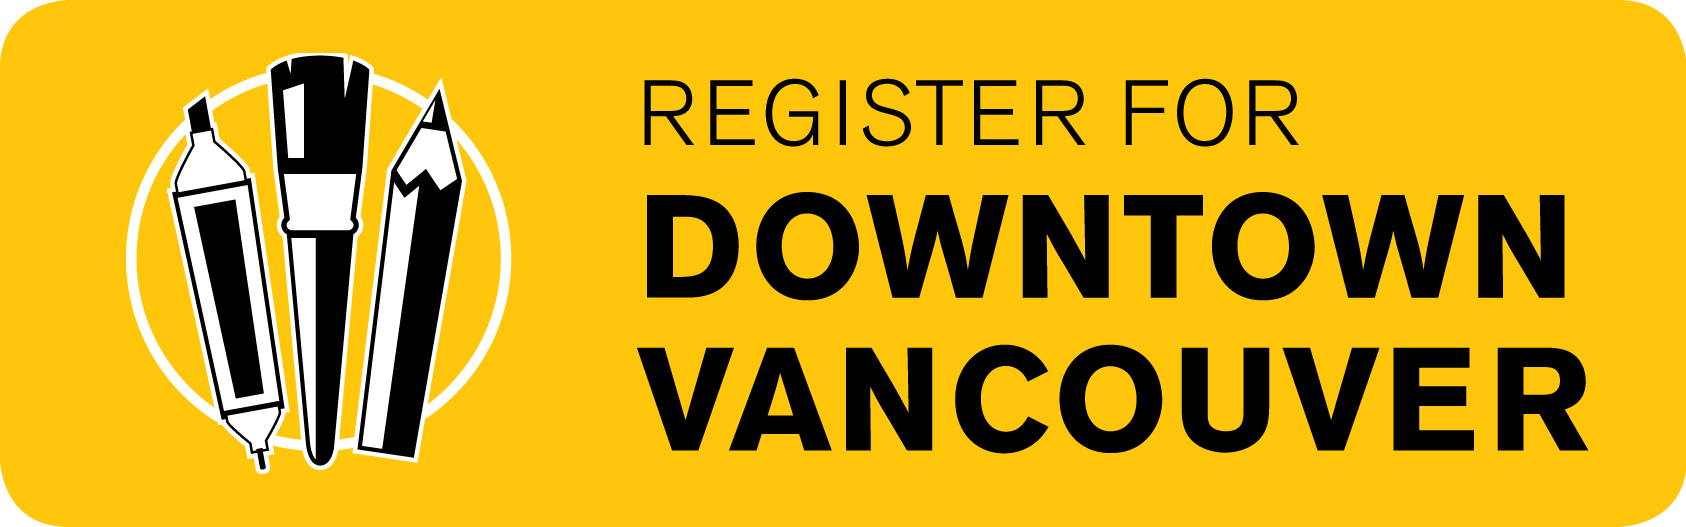 Register for Downtown Vancouver